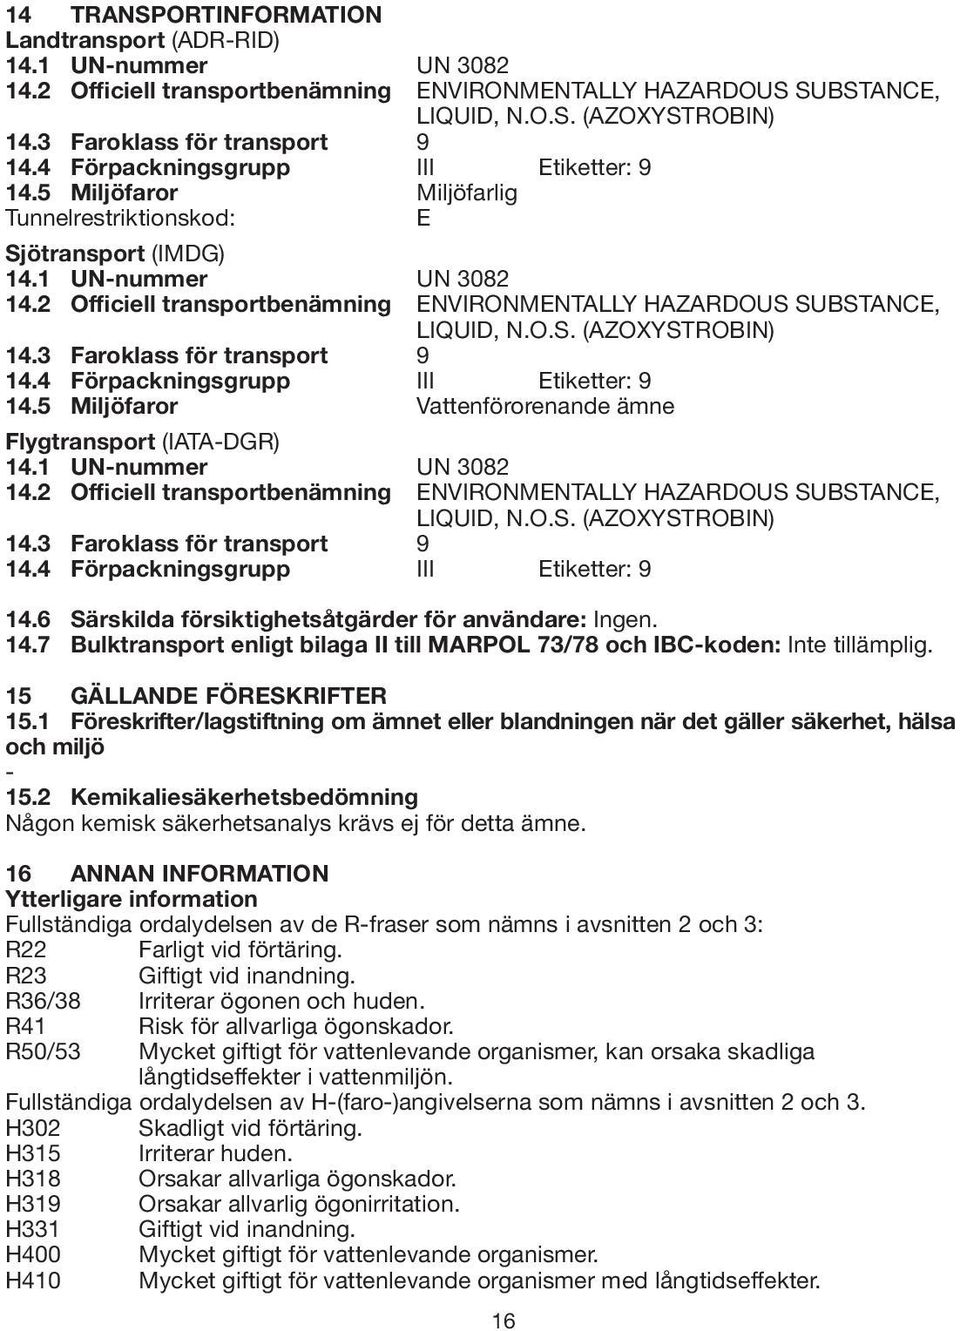 2 Officiell transportbenämning ENVIRONMENTALLY HAZARDOUS SUBSTANCE, LIQUID, N.O.S. (AZOXYSTROBIN) 14.3 Faroklass för transport 9 14.4 Förpackningsgrupp III Etiketter: 9 14.